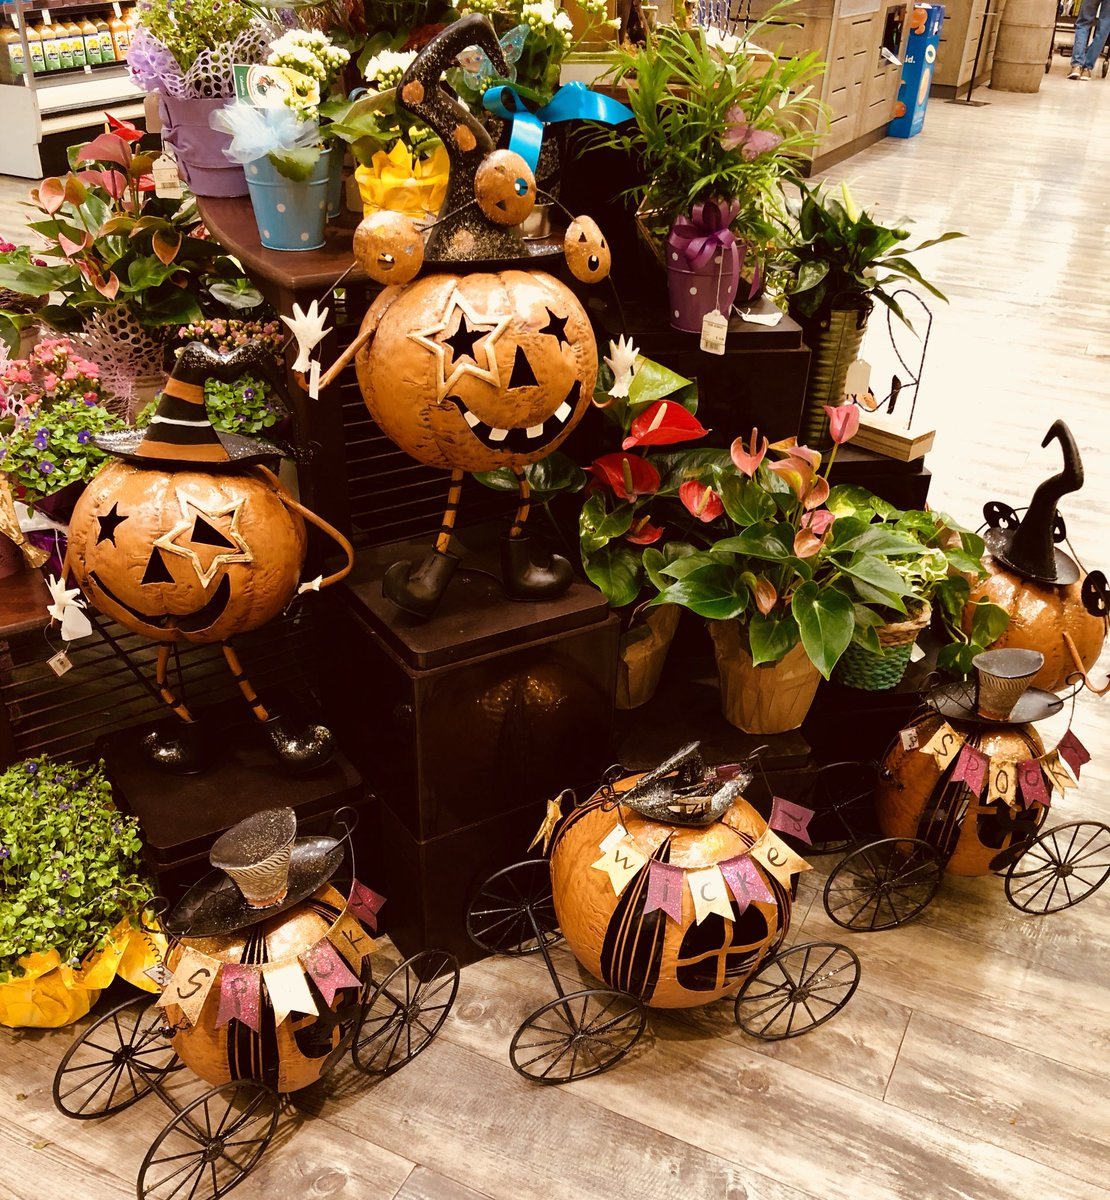 Safeway Halloween Decorations.Mi Ai Parrish On Twitter Living In The Desert I M Often Confused About The Seasons But I M Positive It S Too Damn Early For Safeway To Have Halloween Displays Stop Messing With My Mind